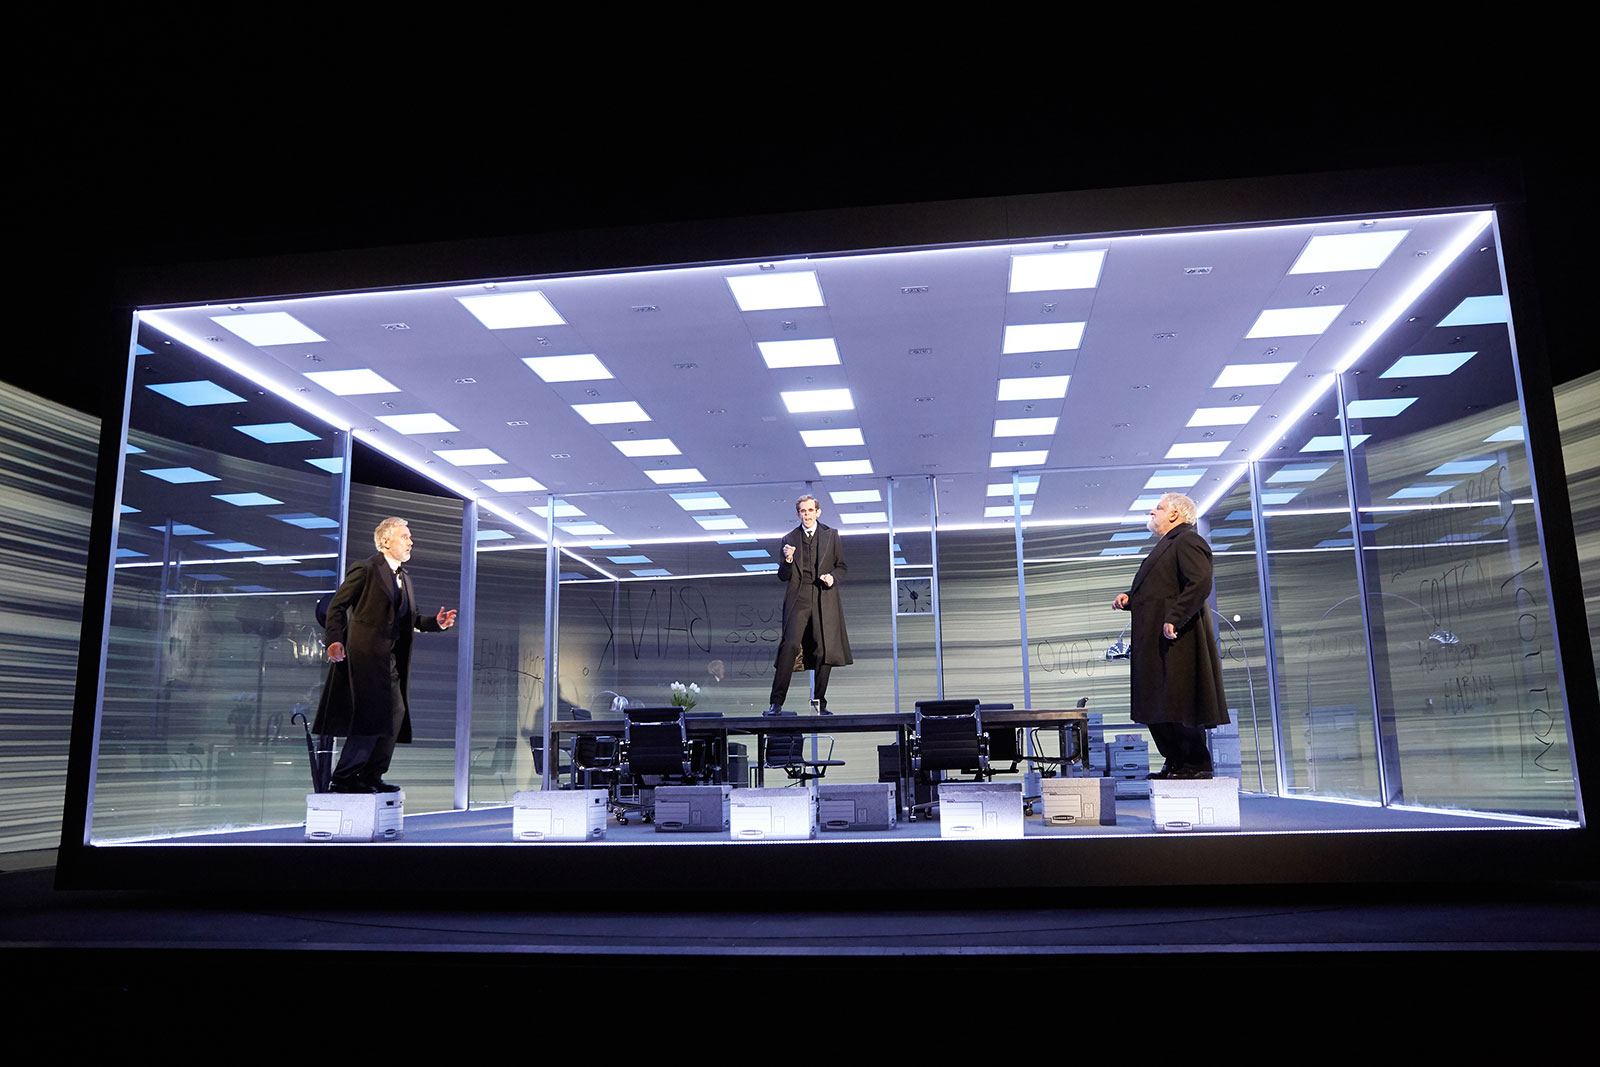 Es Devlin On Her Set Design For The Lehman Trilogy Play Images, Photos, Reviews